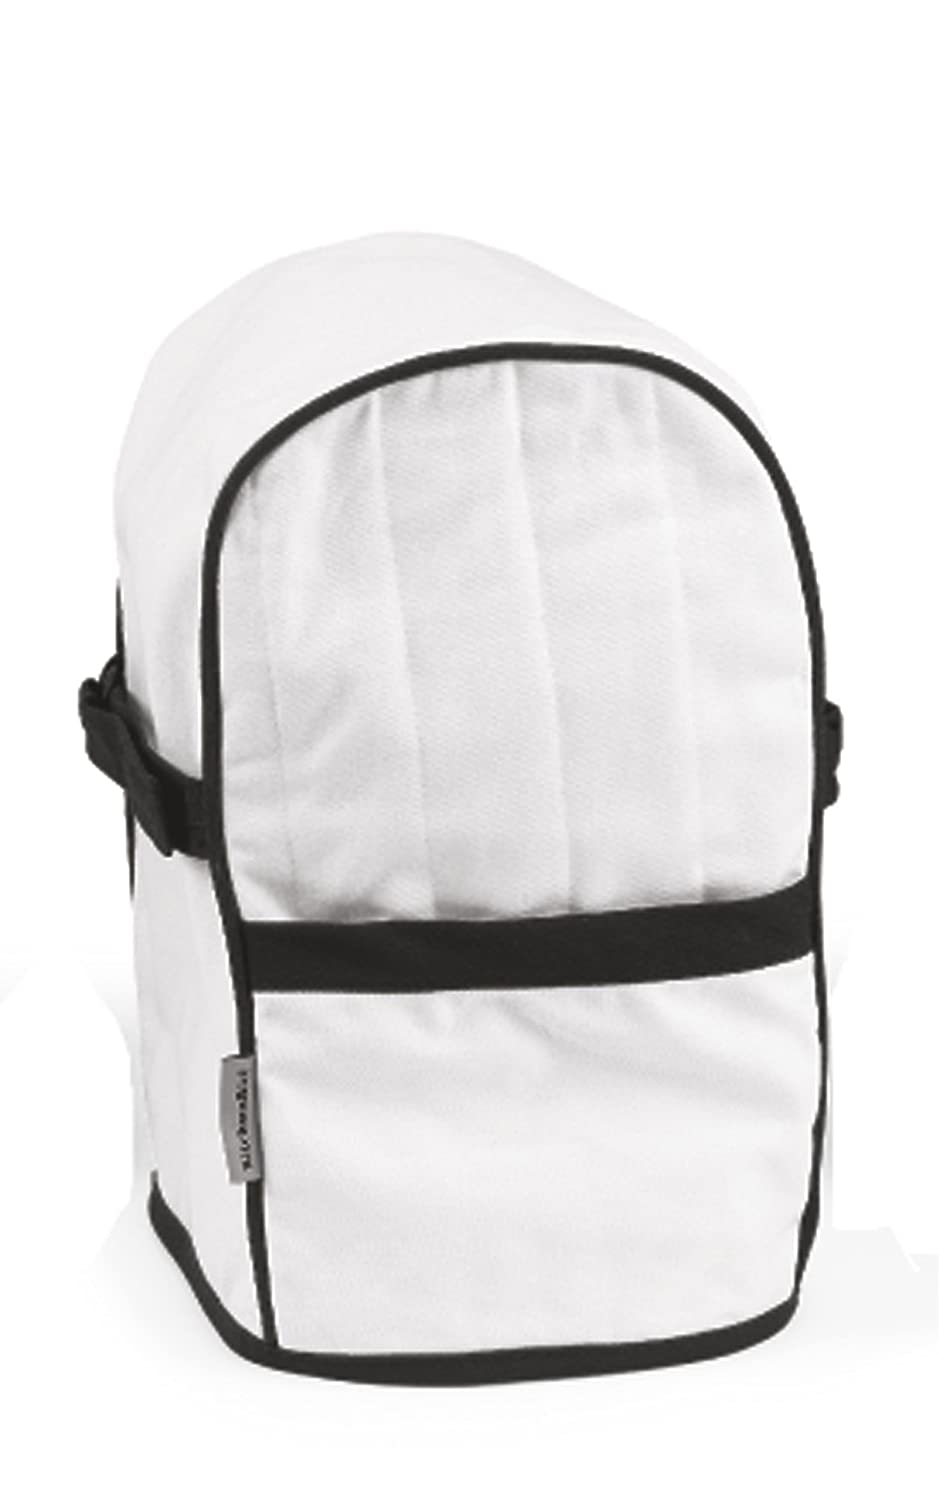 KitchenAid KACC1WH Quilted Cover with Pocket, White